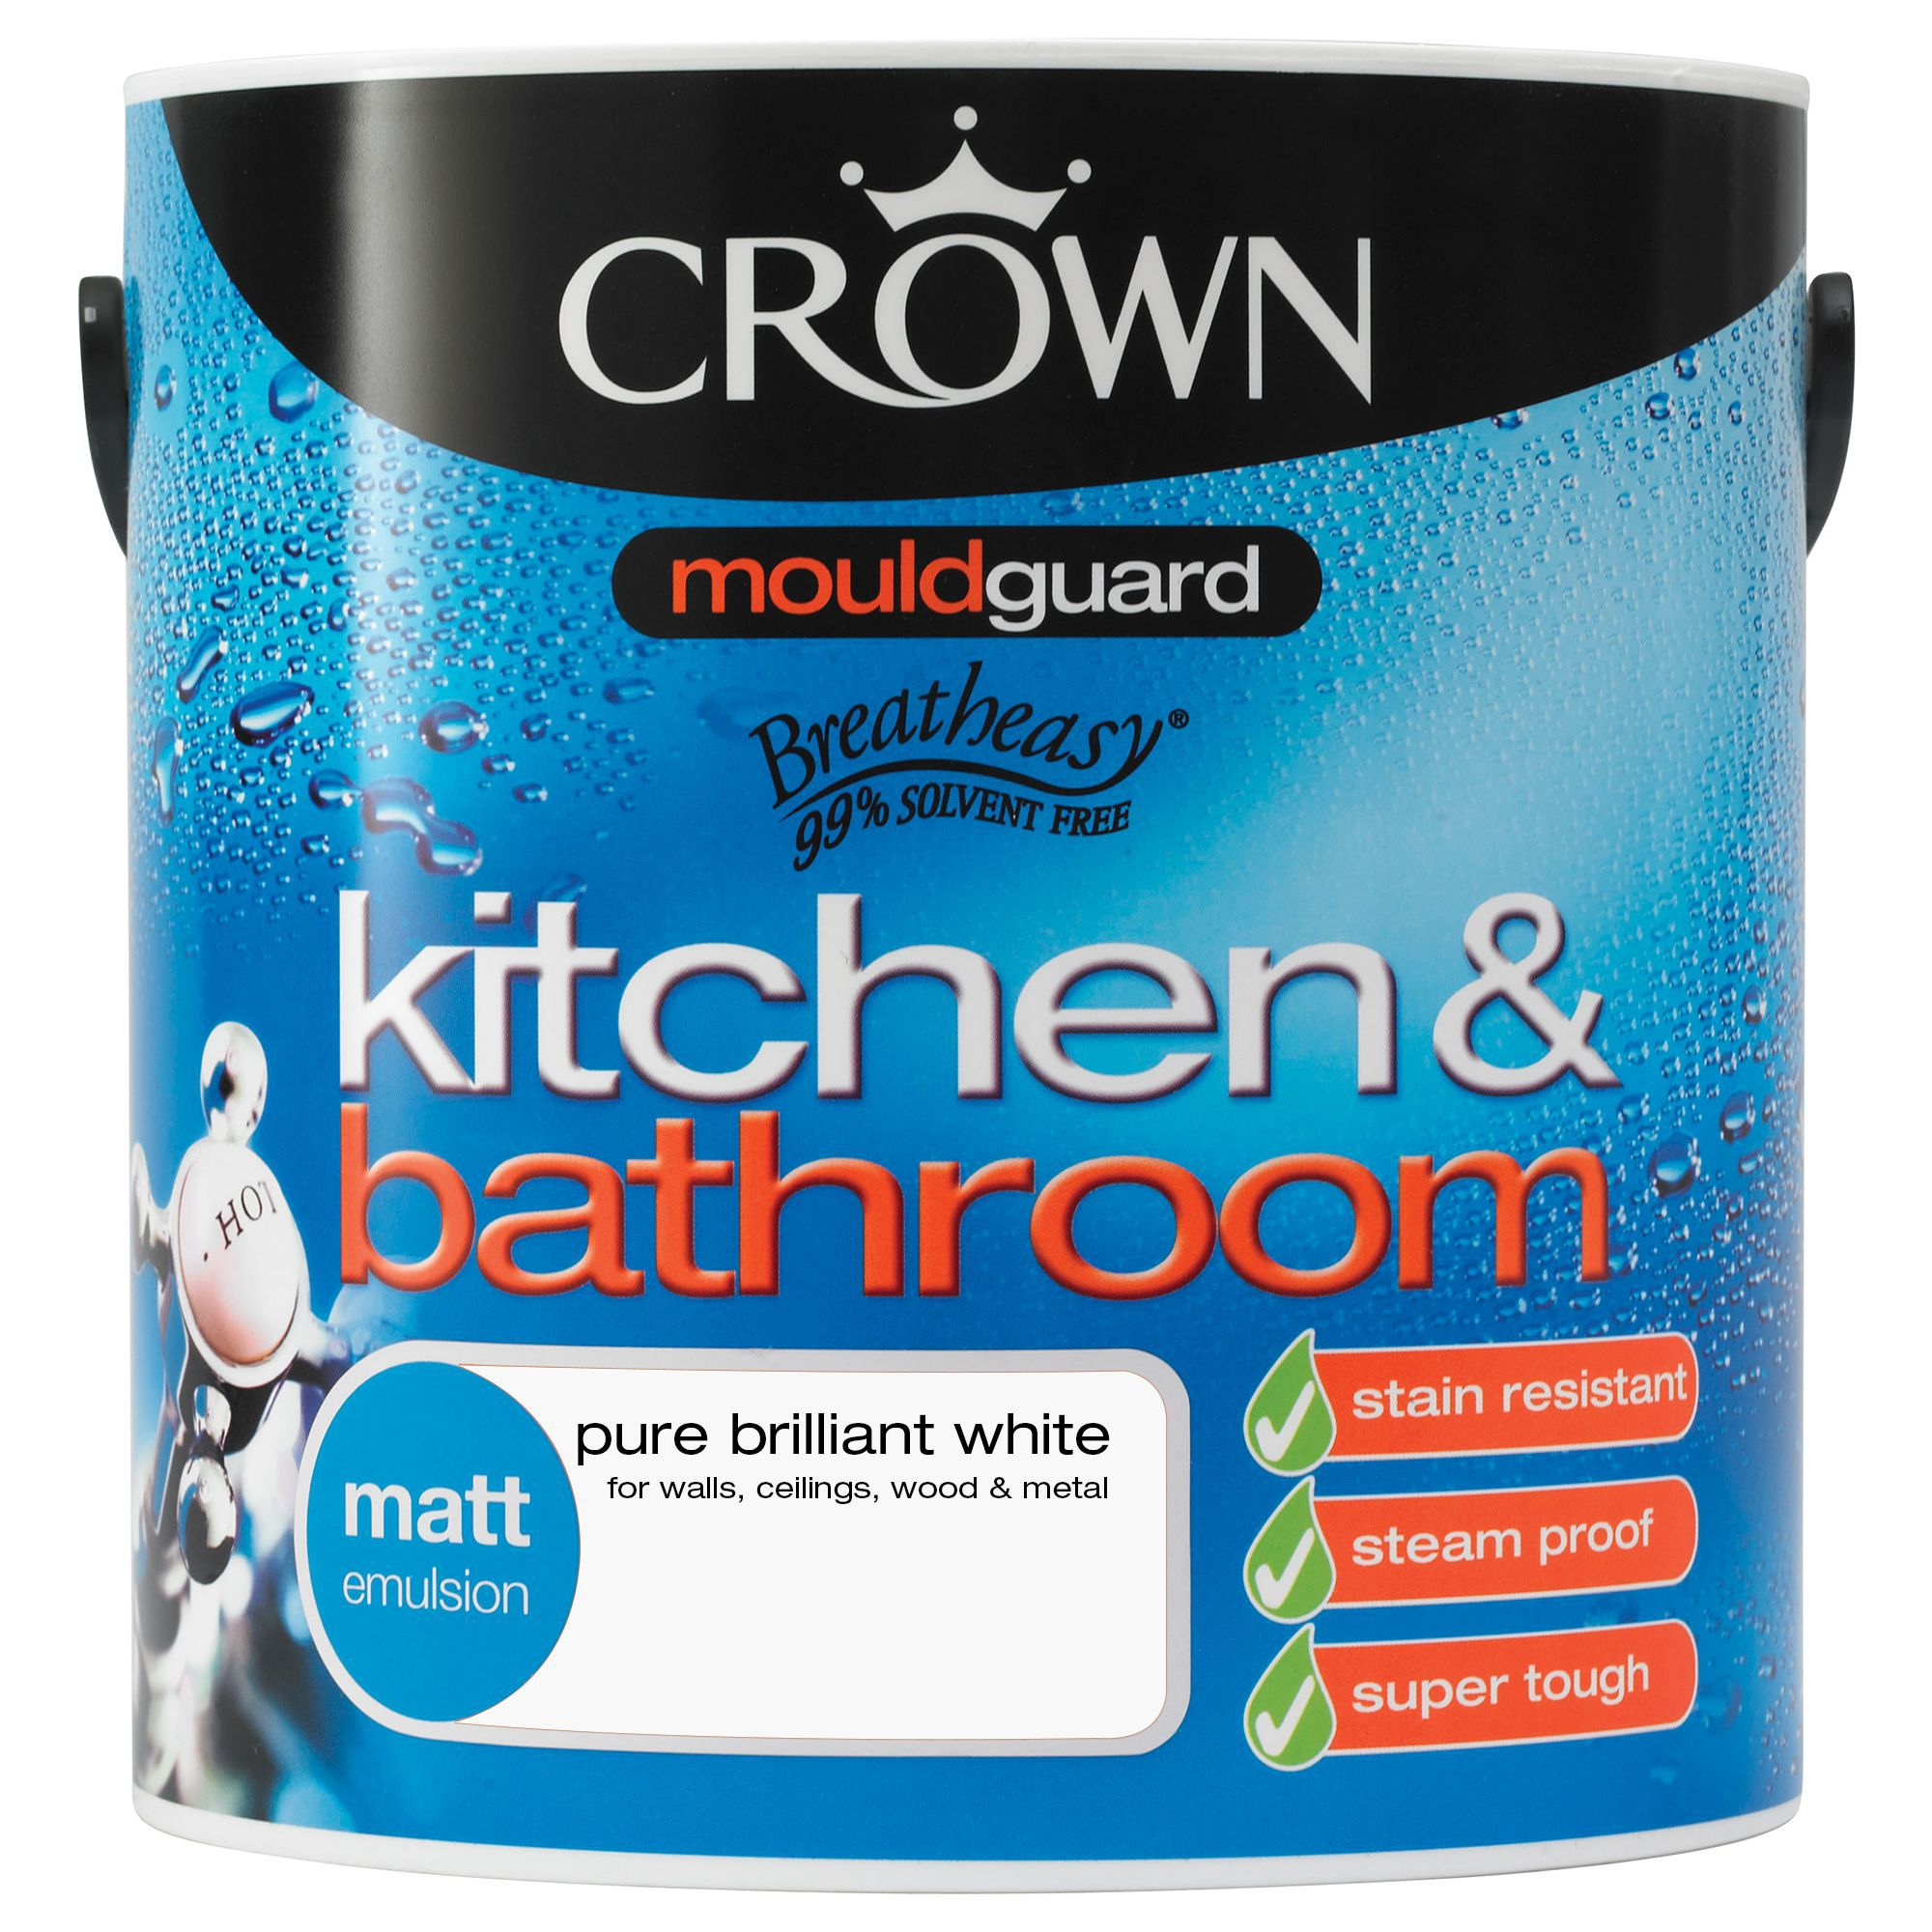 Magnificent Crown Kitchen Bathroom Pure Brilliant White Matt Emulsion Paint 2 5L Departments Diy At Bq Interior Design Ideas Inesswwsoteloinfo